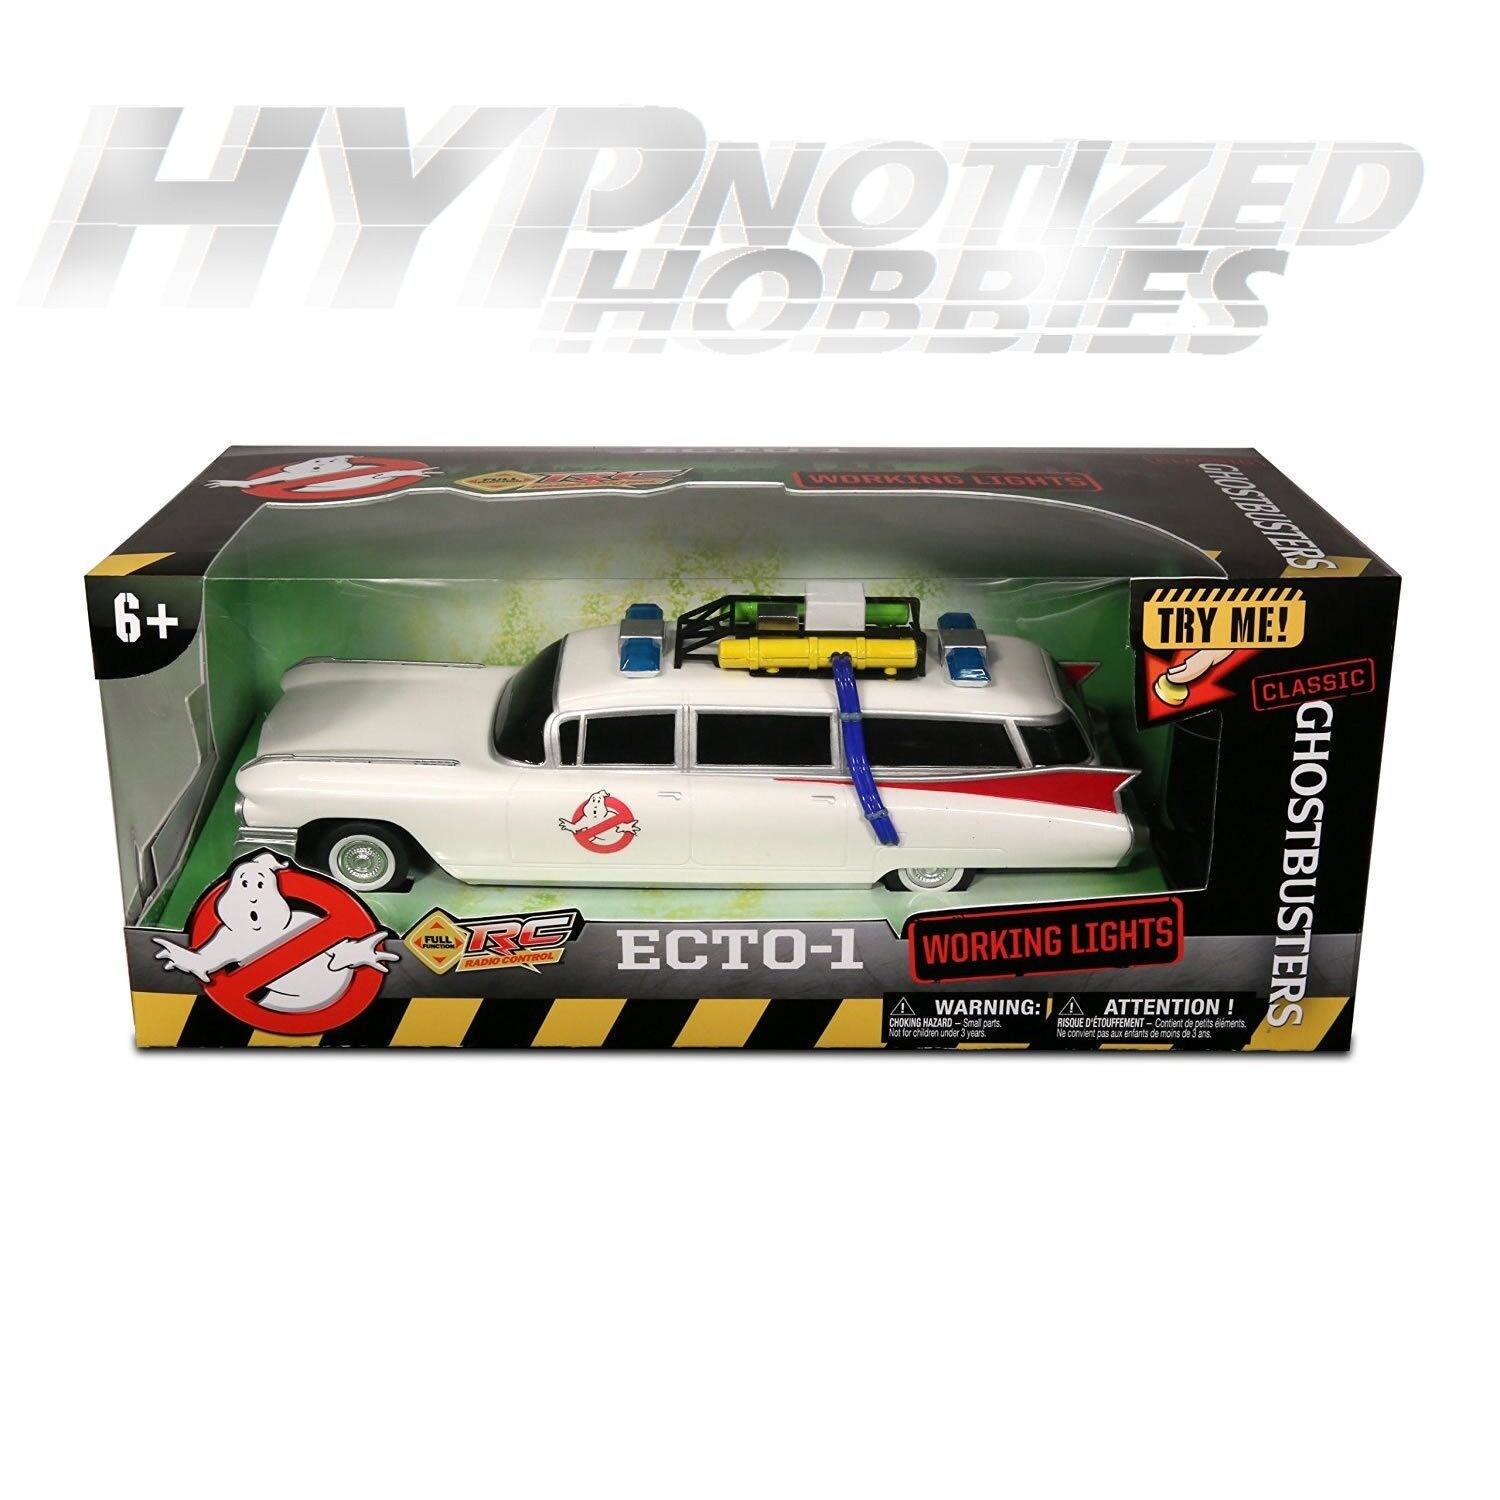 GHOSTBUSTERS ECTO-1 CLASSIC 1 14 REMOTE CONTROL CAR    6612